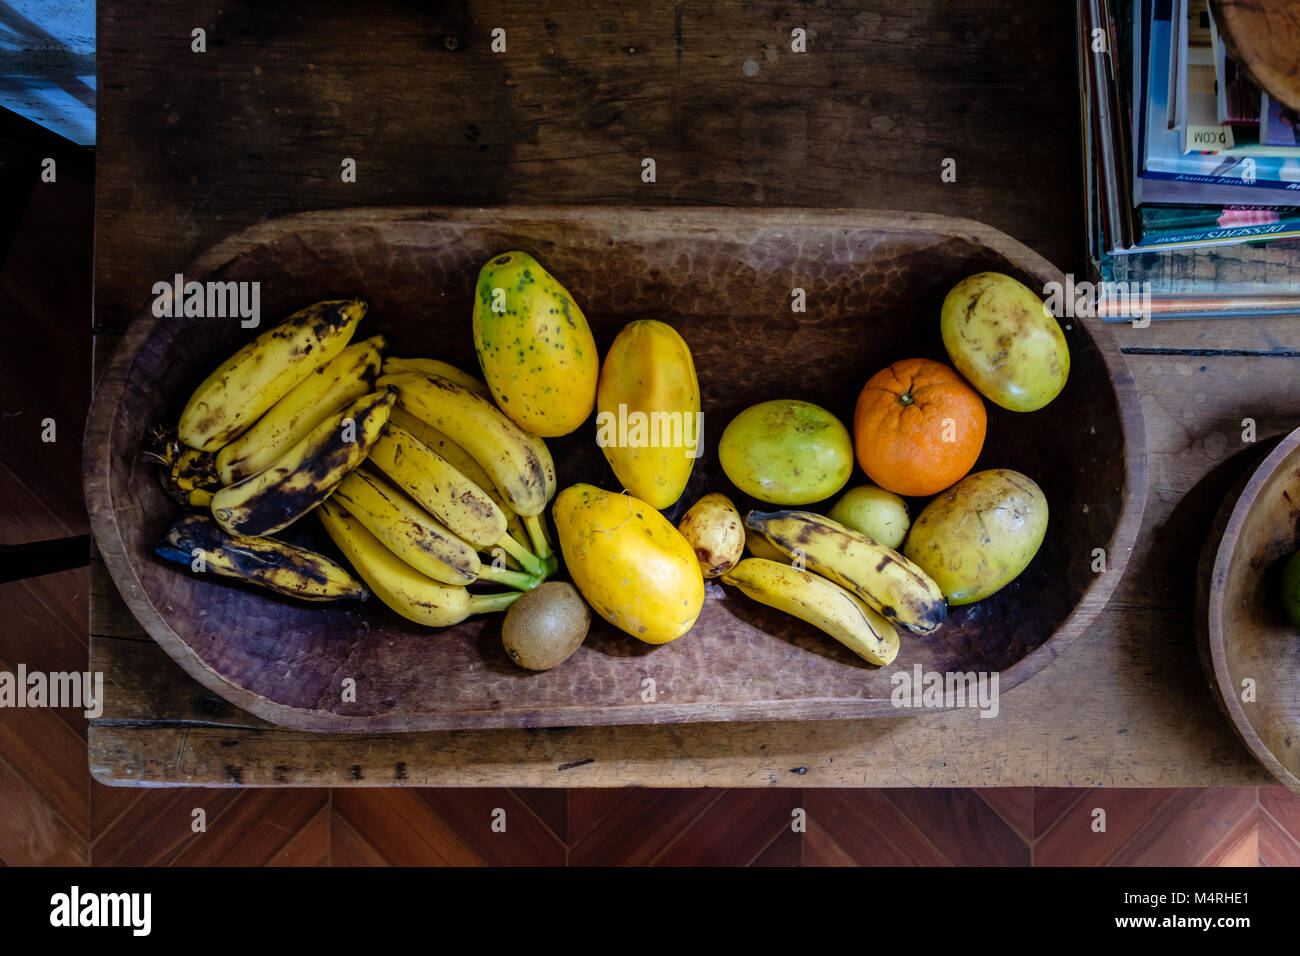 various fruits on a wooden platter with incoming sunlight. There are bananas, oranges, papaya - Stock Image